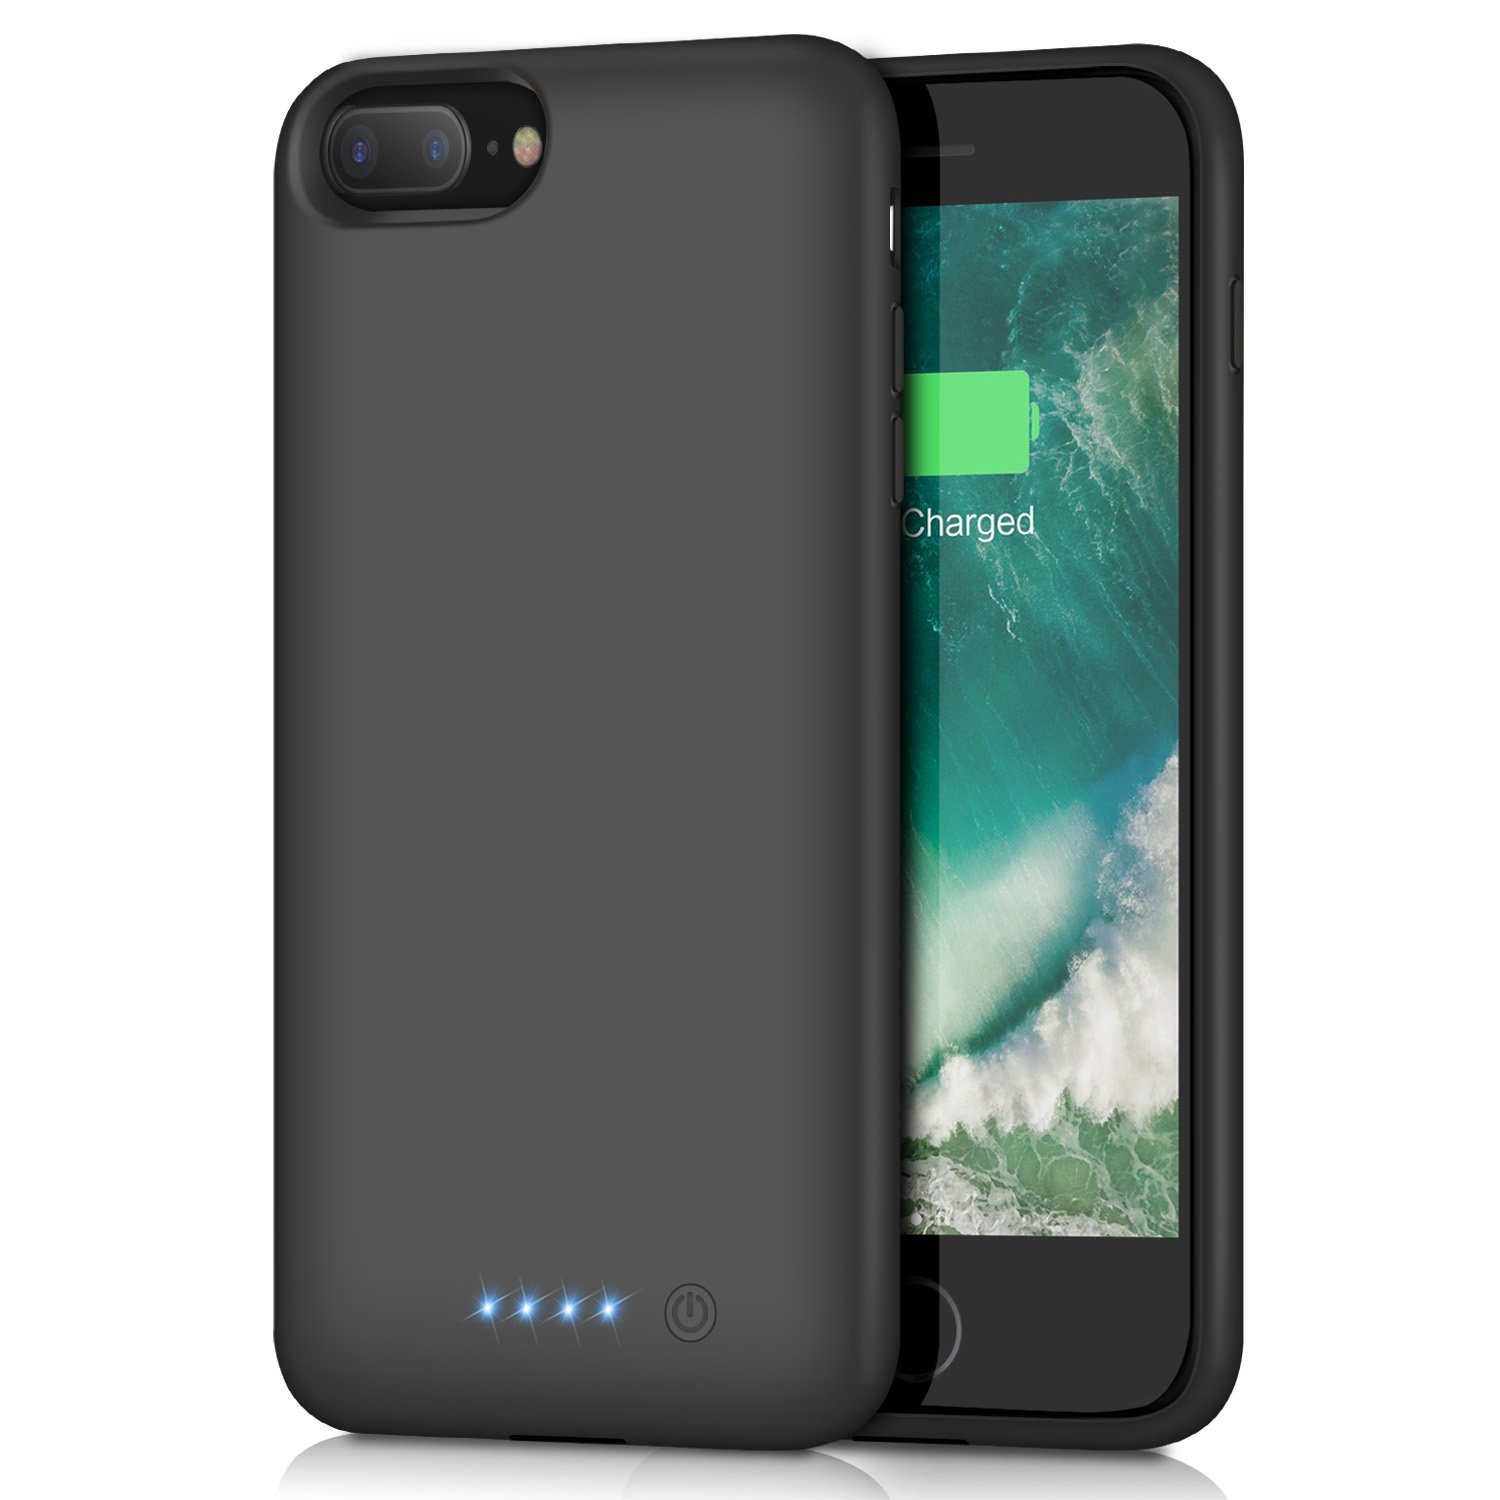 Battery case for iPhone 8 plus/7 plus 8500mAh, HETP Rechargeable Extended Battery Cover for Apple iPhone 8 plus 7 plus Portable Charging Case Backup Power Case (5.5 inch) -Red